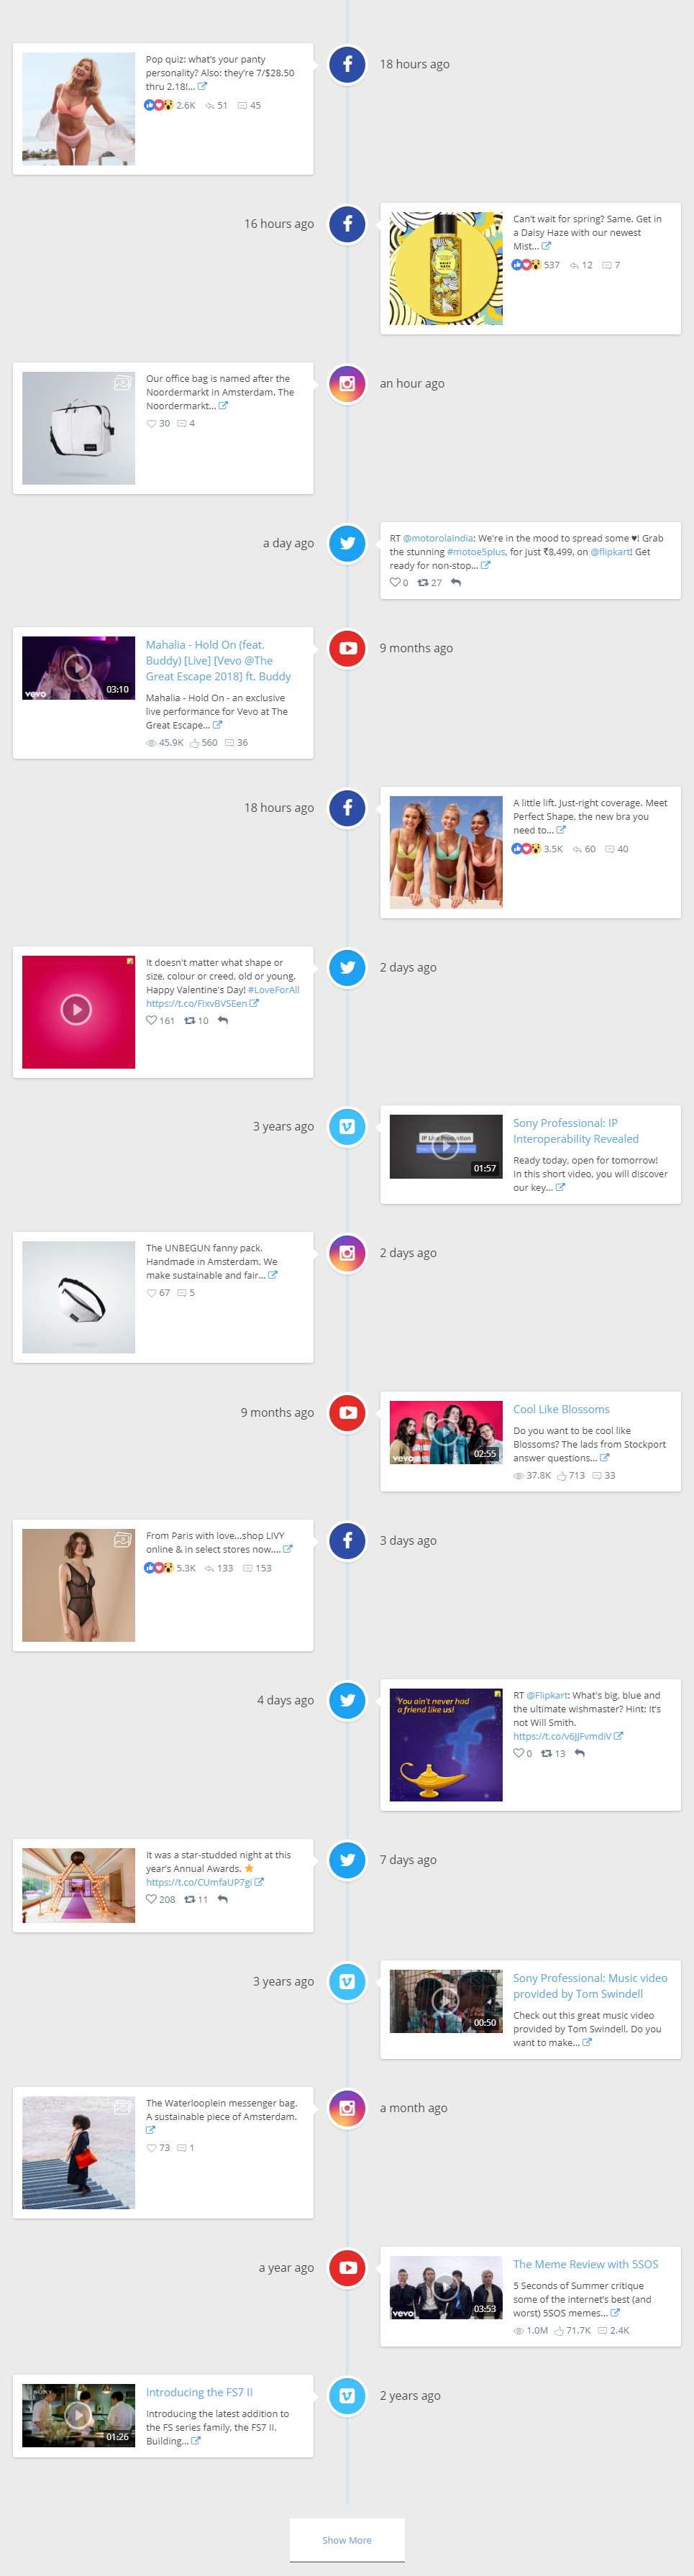 Facebook,YouTube Channel,Vimeo,Twitter,Instagram Social Streams Timeline